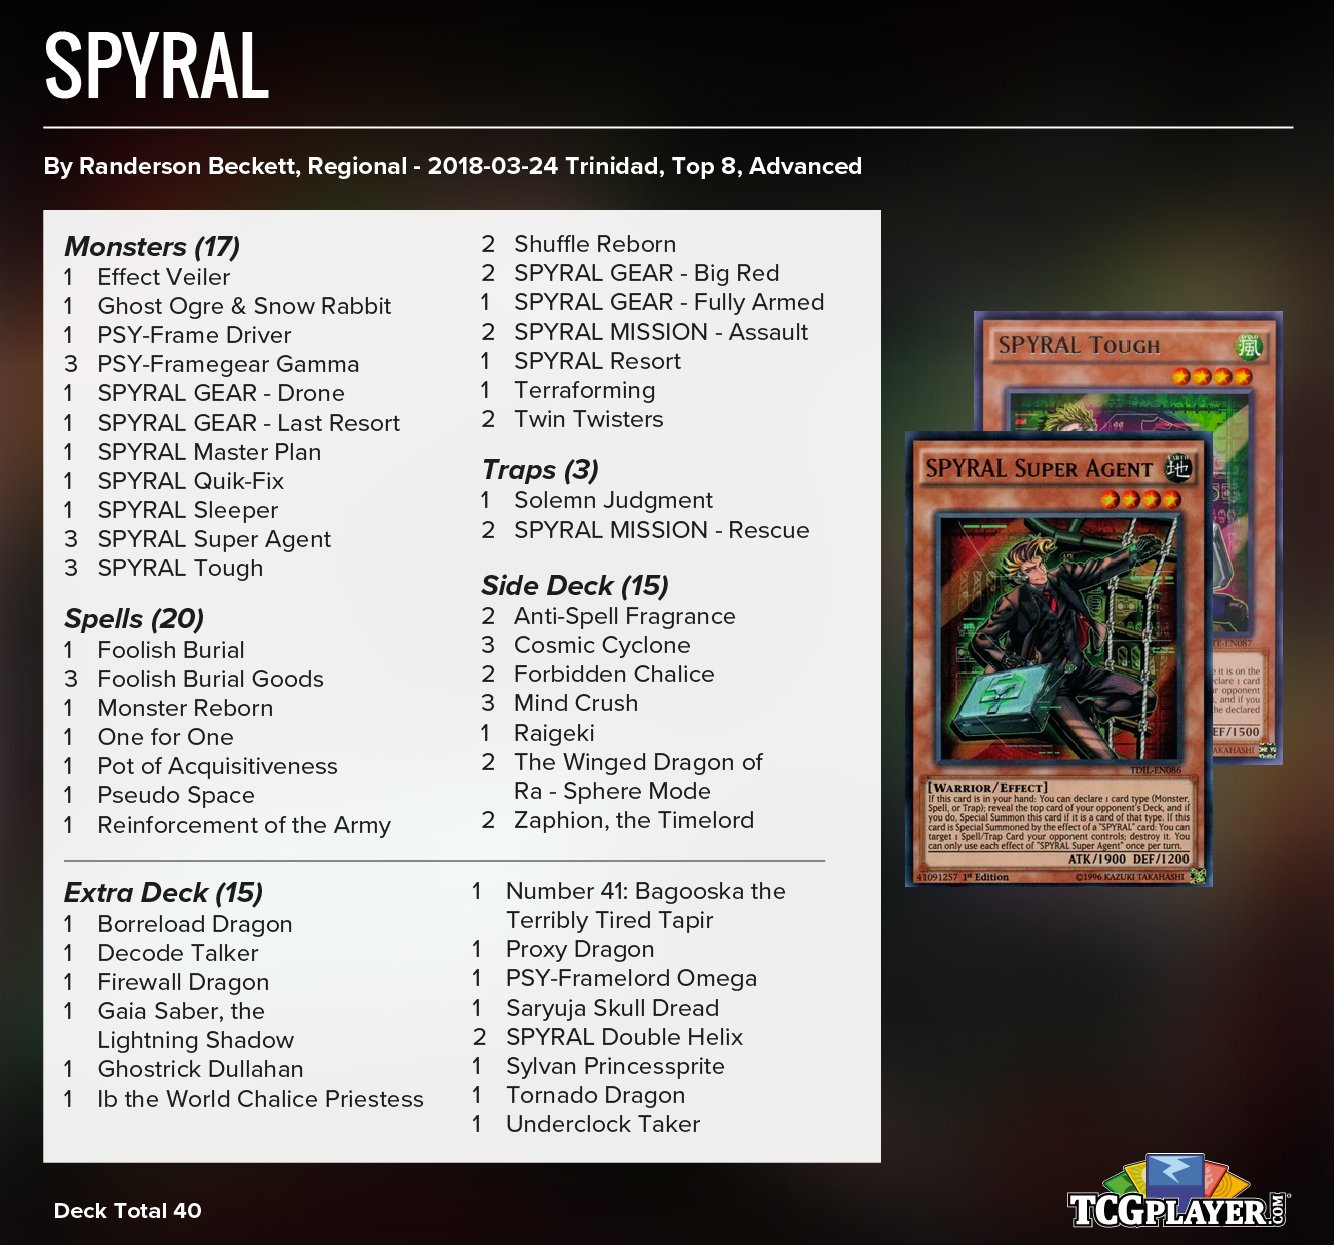 Tcgplayer Infinite Yu Gi Oh A Twitter Jason Spyrals Were Back In Top Cut Action A Little While Ago In Trinidad Randerson Beckett Took This Build To The Top 8 Teching Pseudo Space